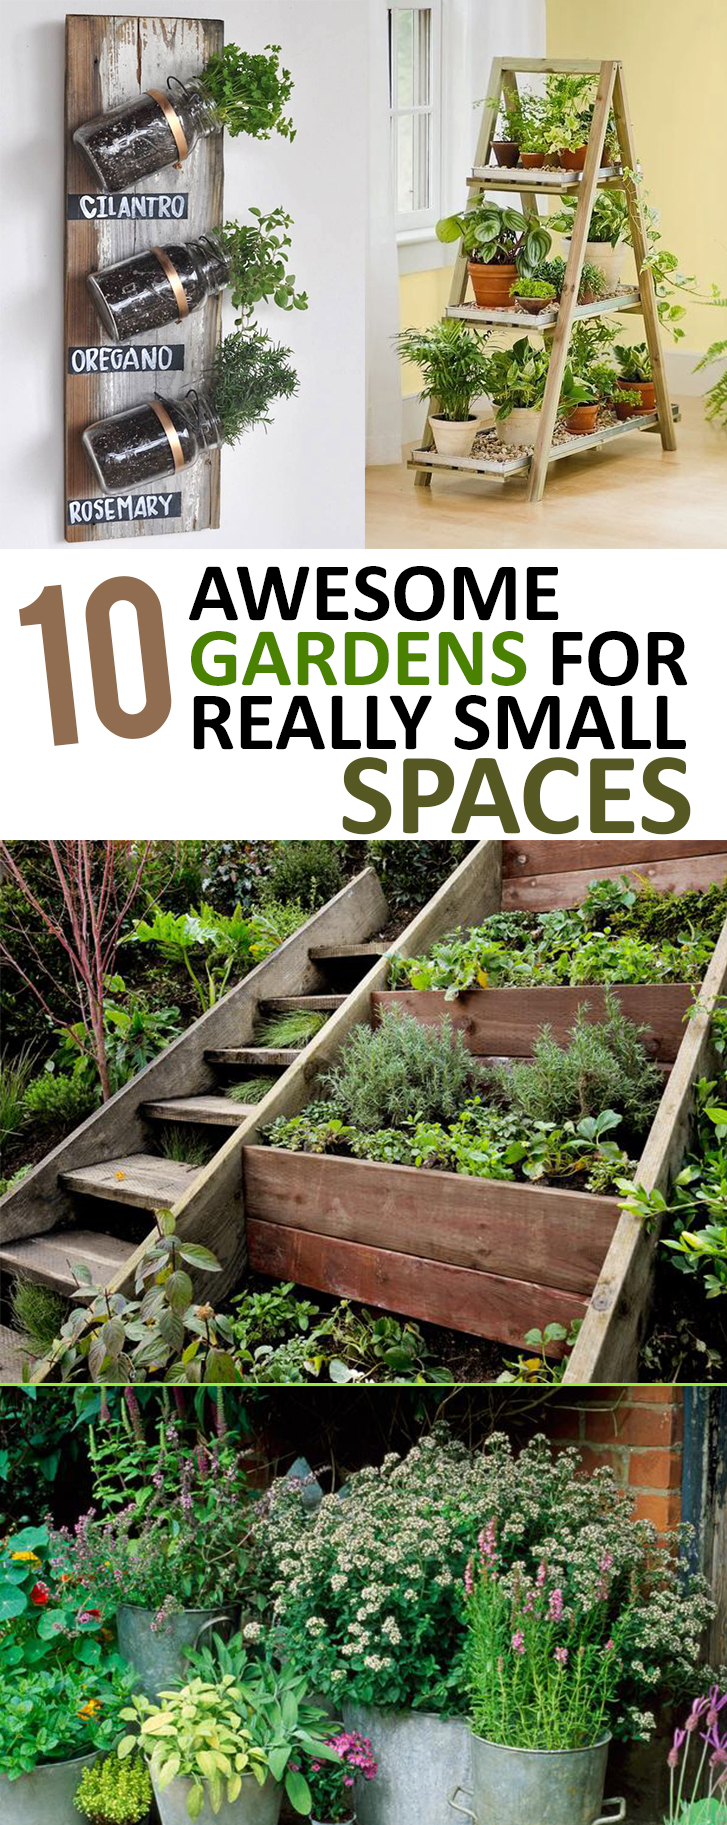 10 awesome gardens for really small spaces for Garden space ideas